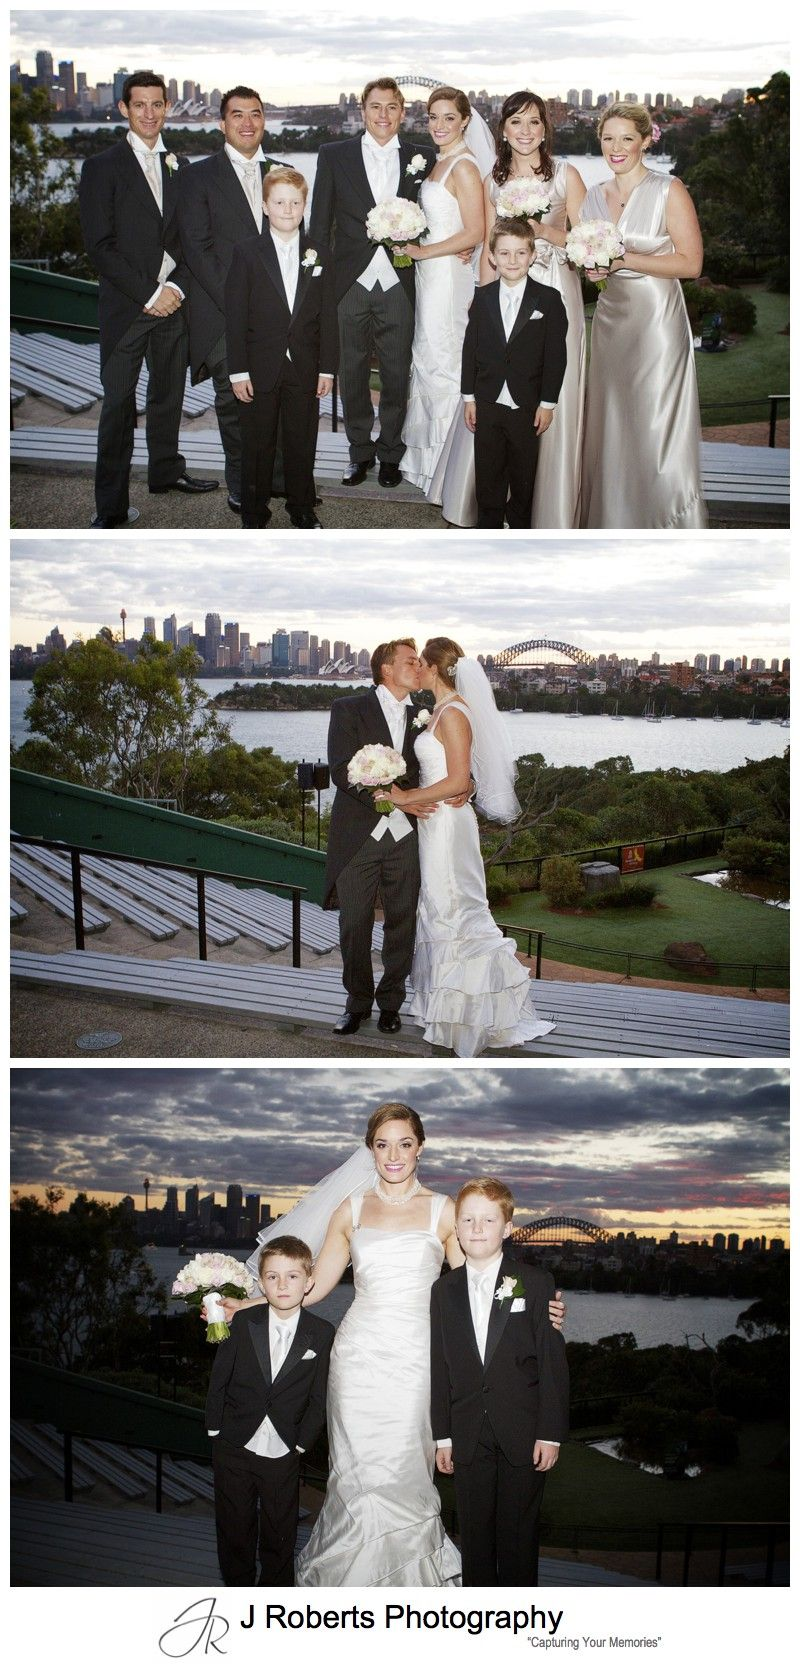 Sunset wedding photographs at Taronga Zoo Sydney - wedding photography sydney